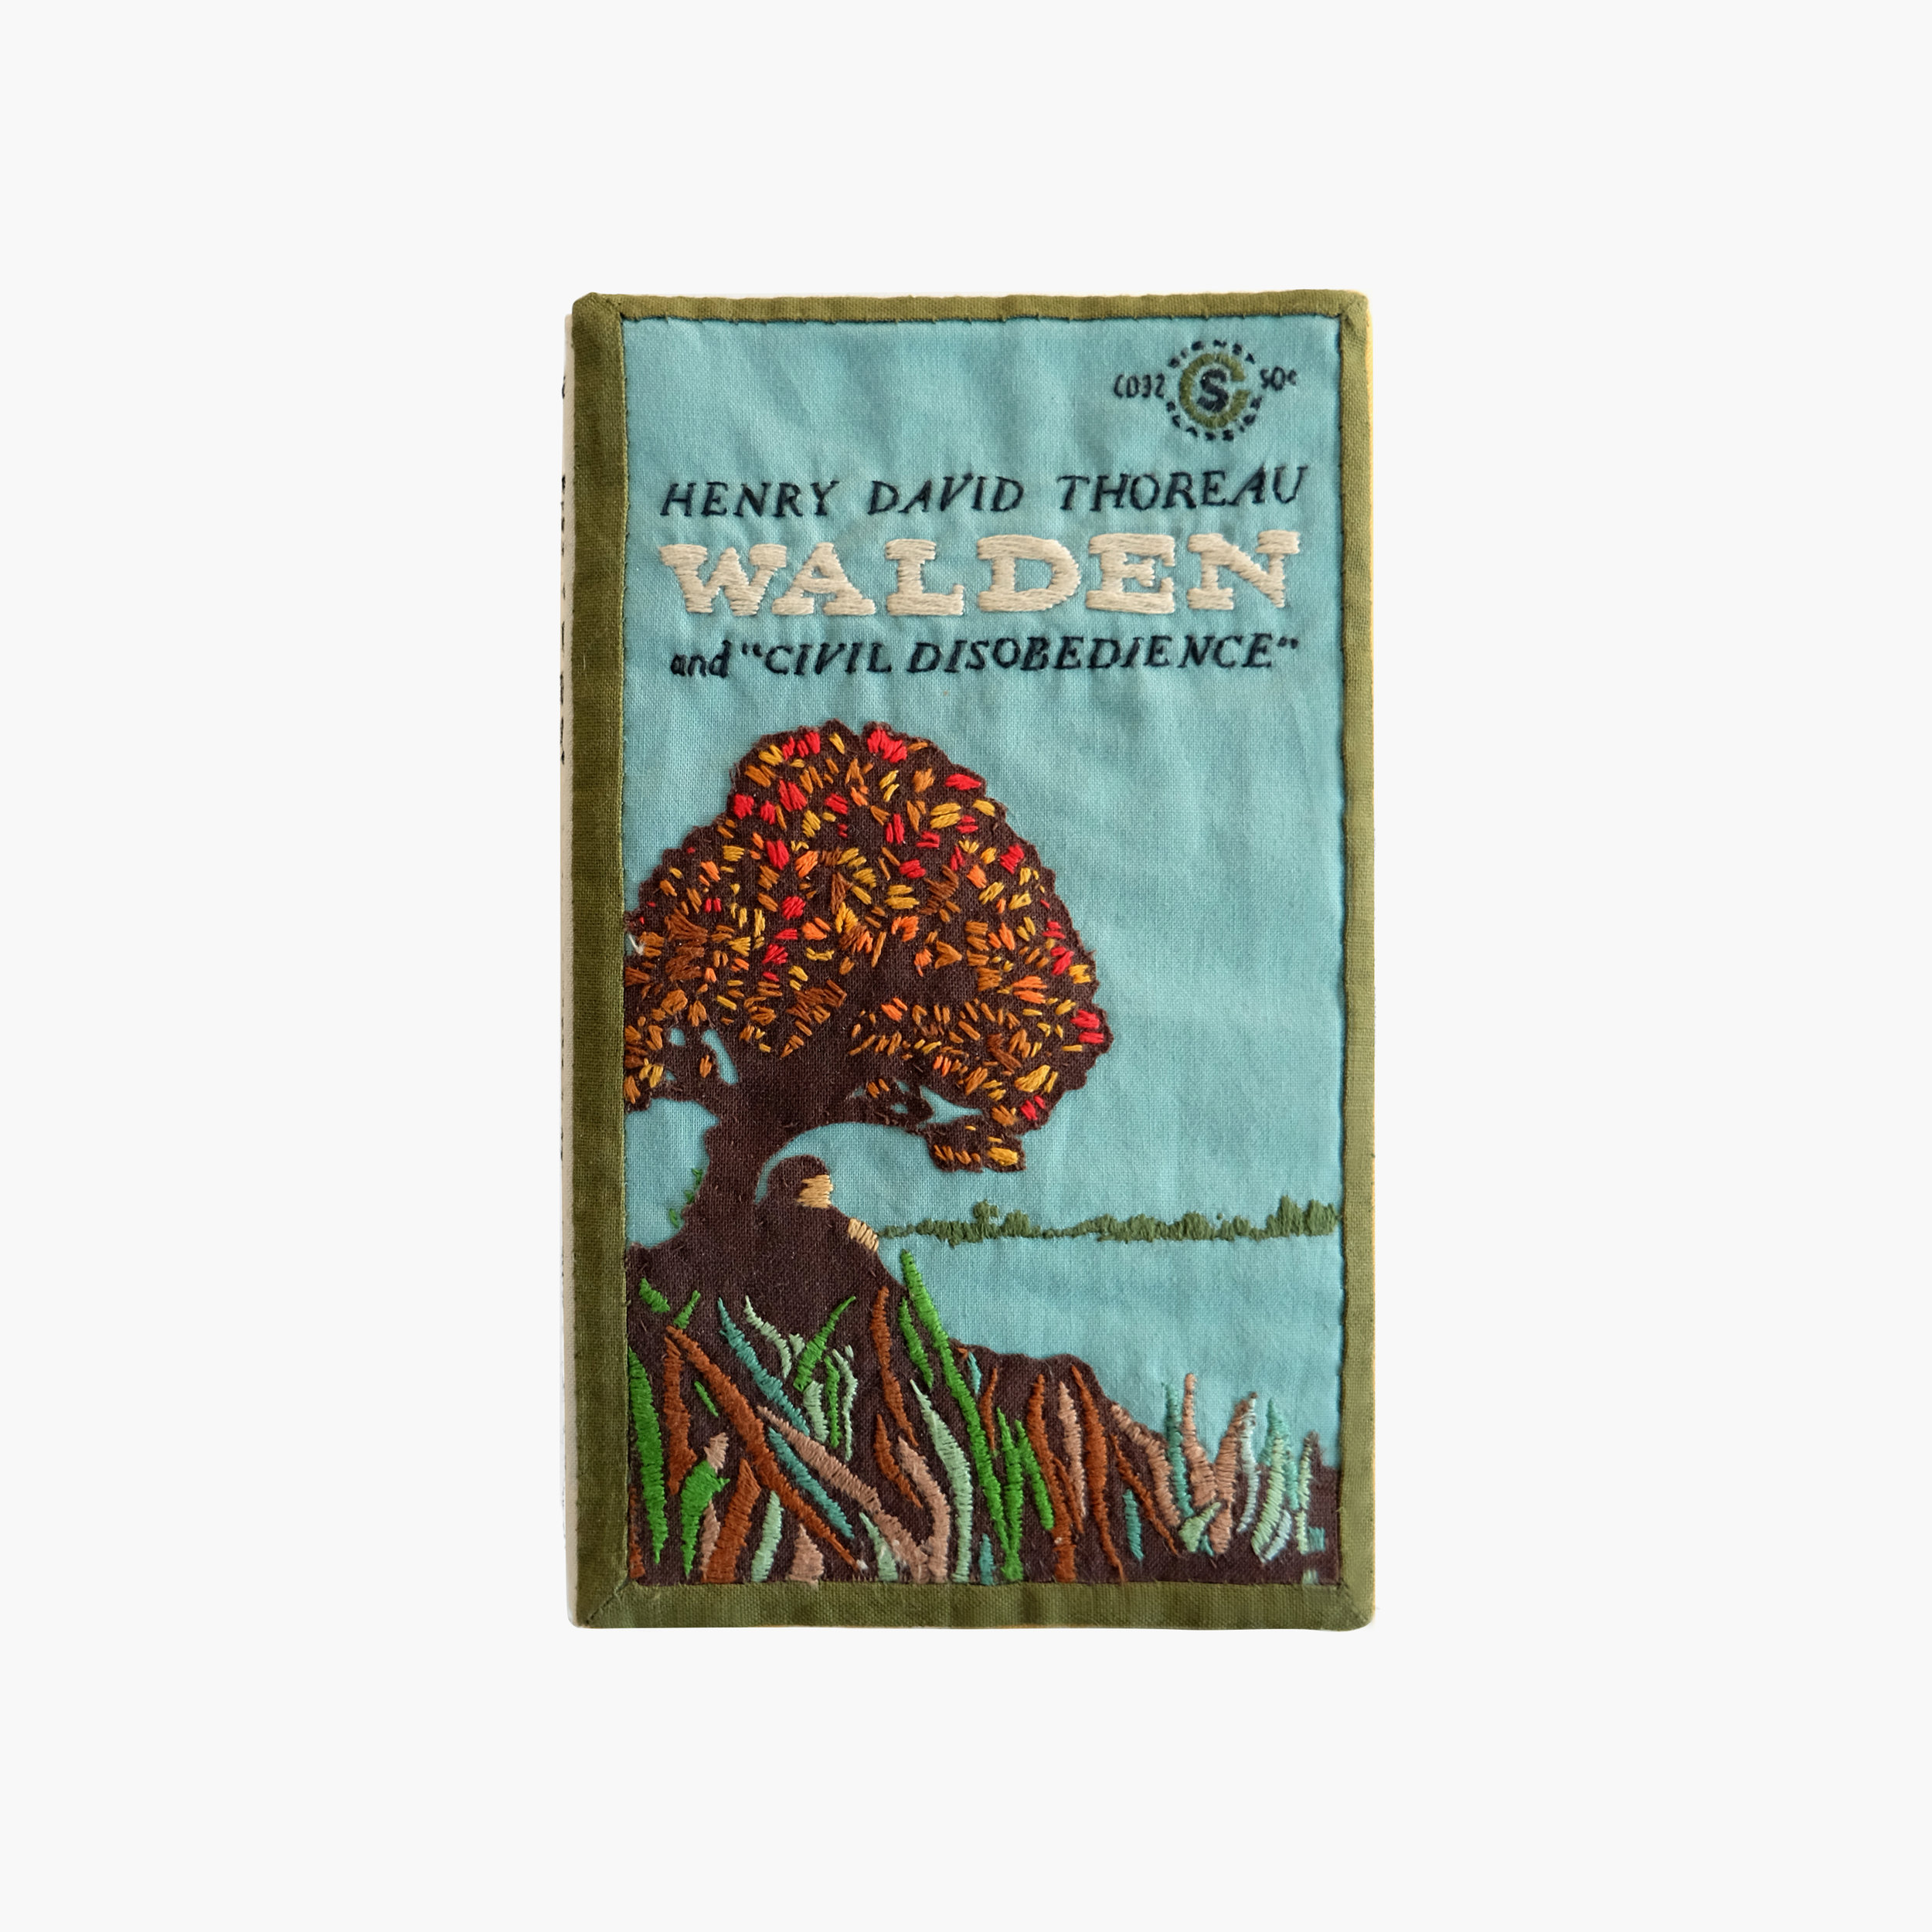 Escapist Reading    Vintage Signet Classic Paperback of Thoreau's Walden   Felt, cotton cloth, embroidery floss 7 × 4.25 × 0.5 in 2014